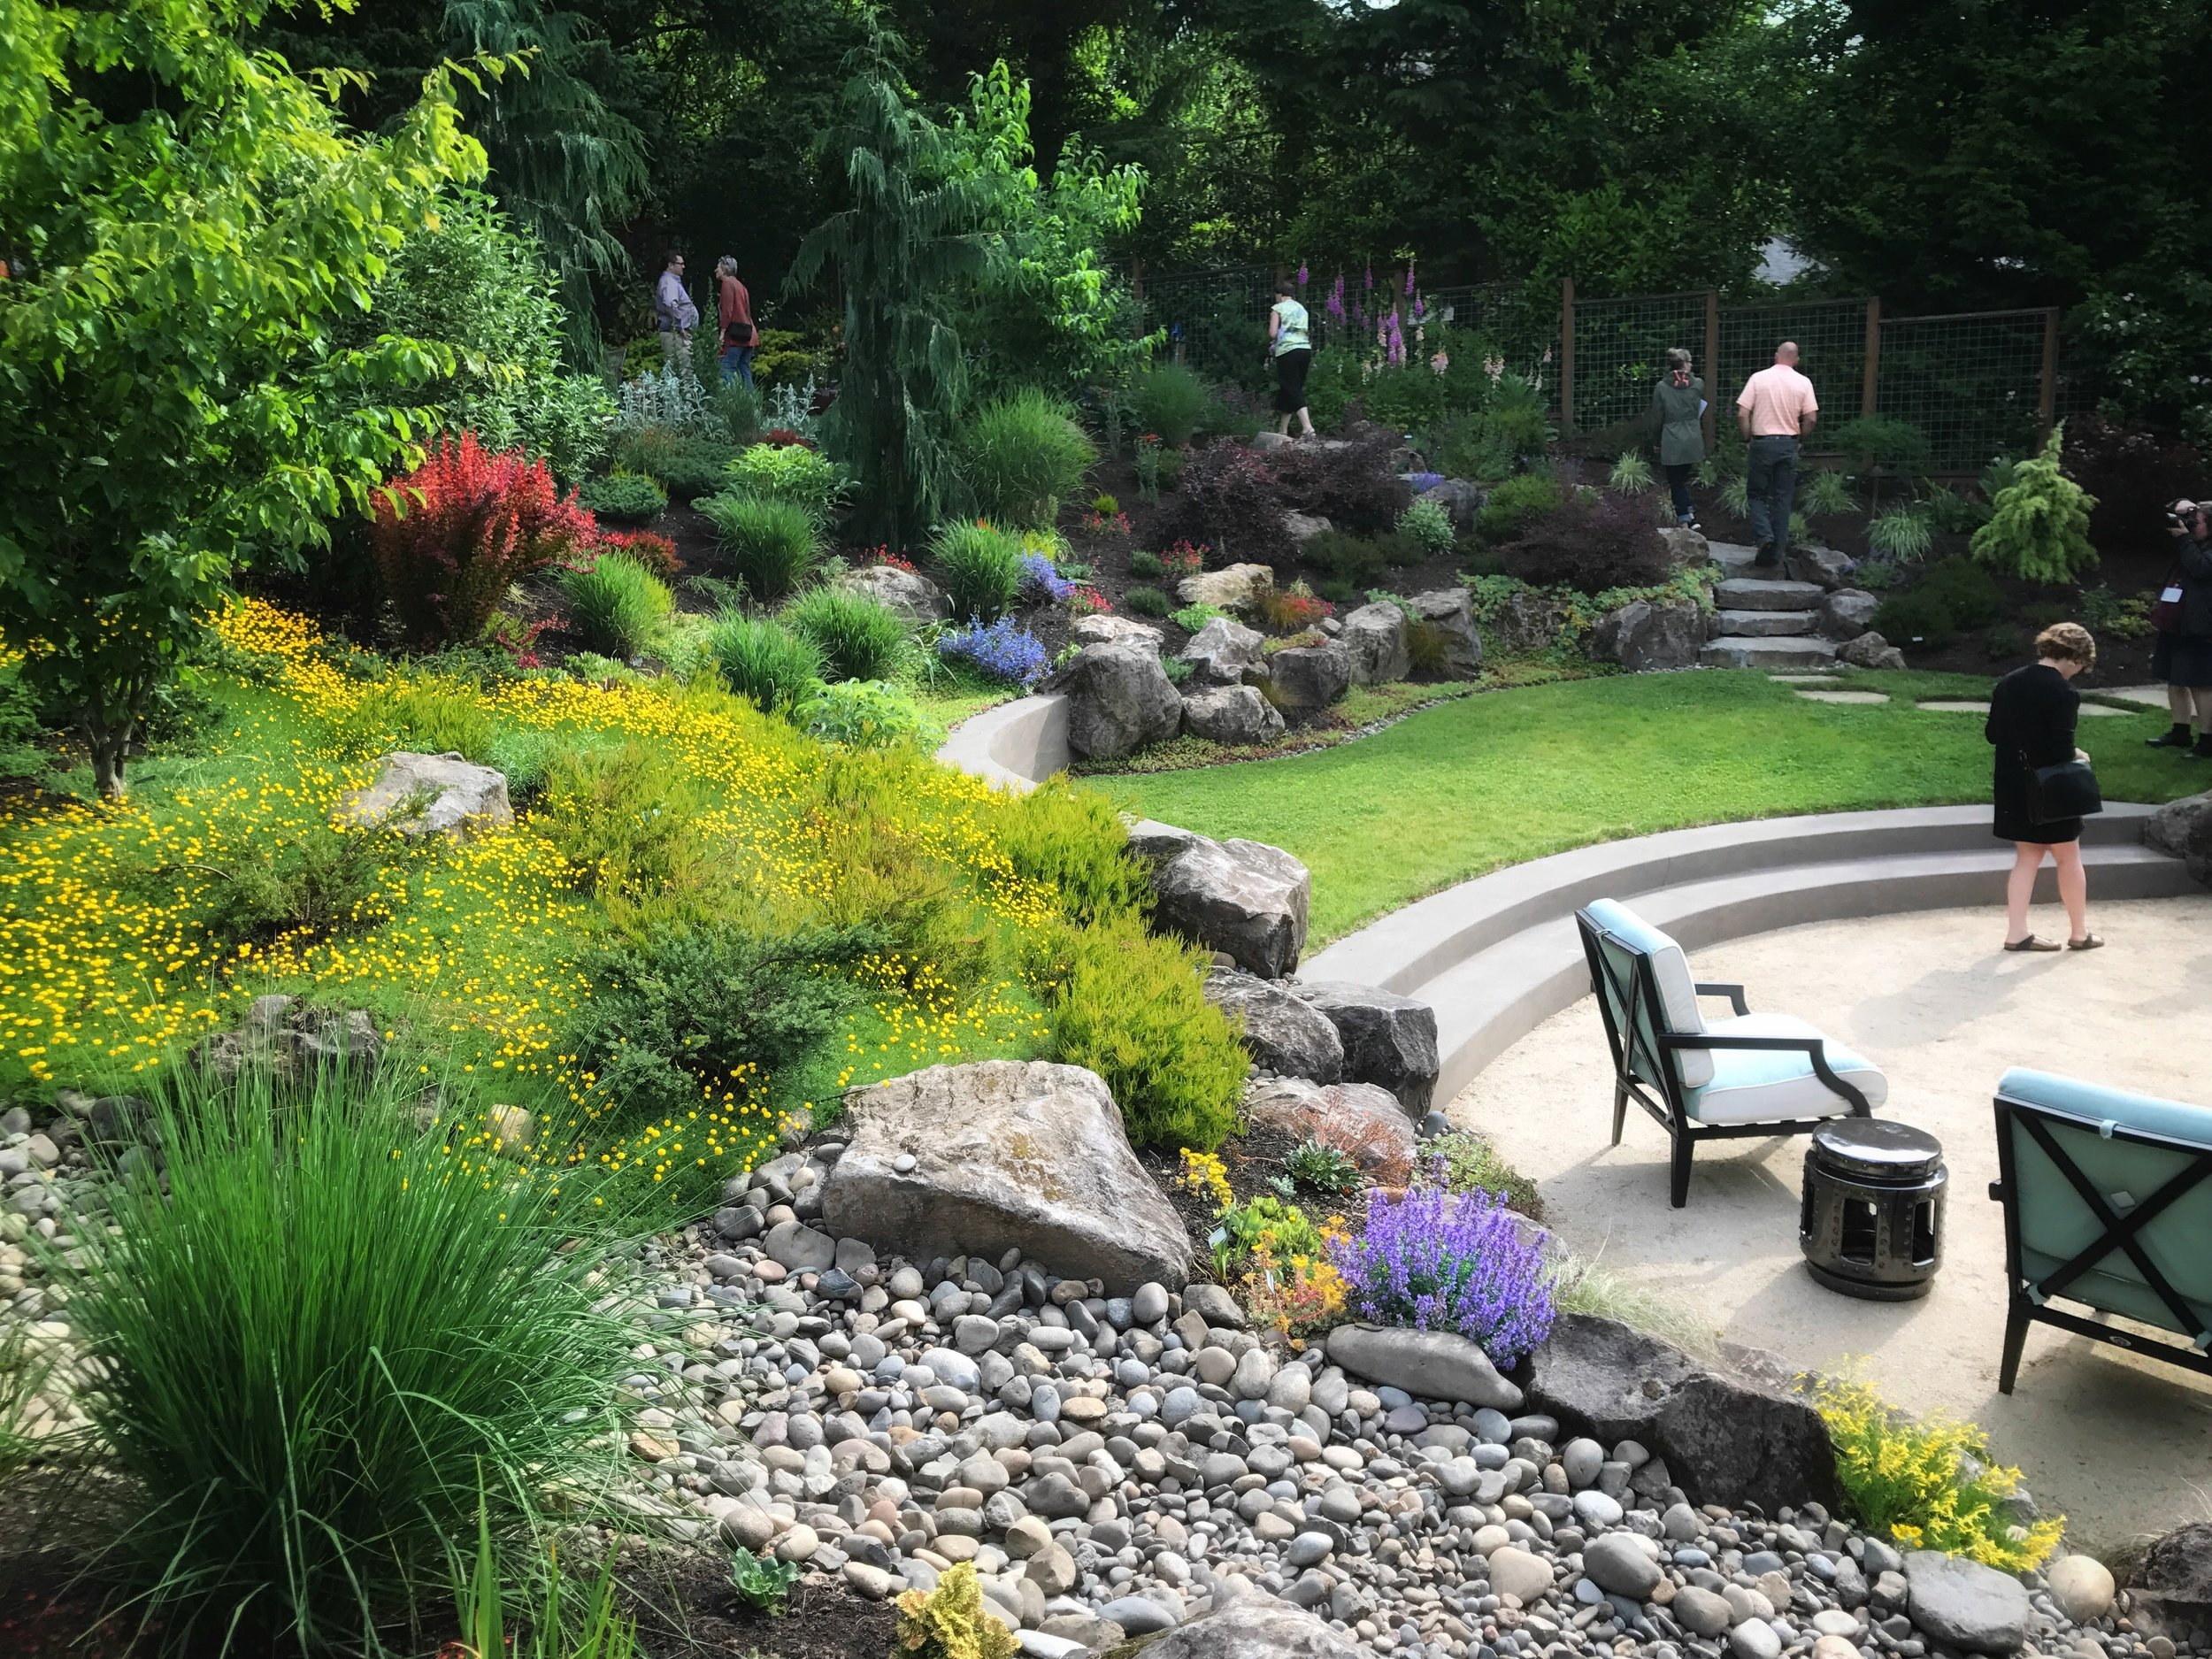 Amphitheater effect, perfect aspect to look up into from patio below. Effective plantings by Hardiman & LaTourette and homeowners. Landscapes East & West installed the beautiful concrete from the designer's work.